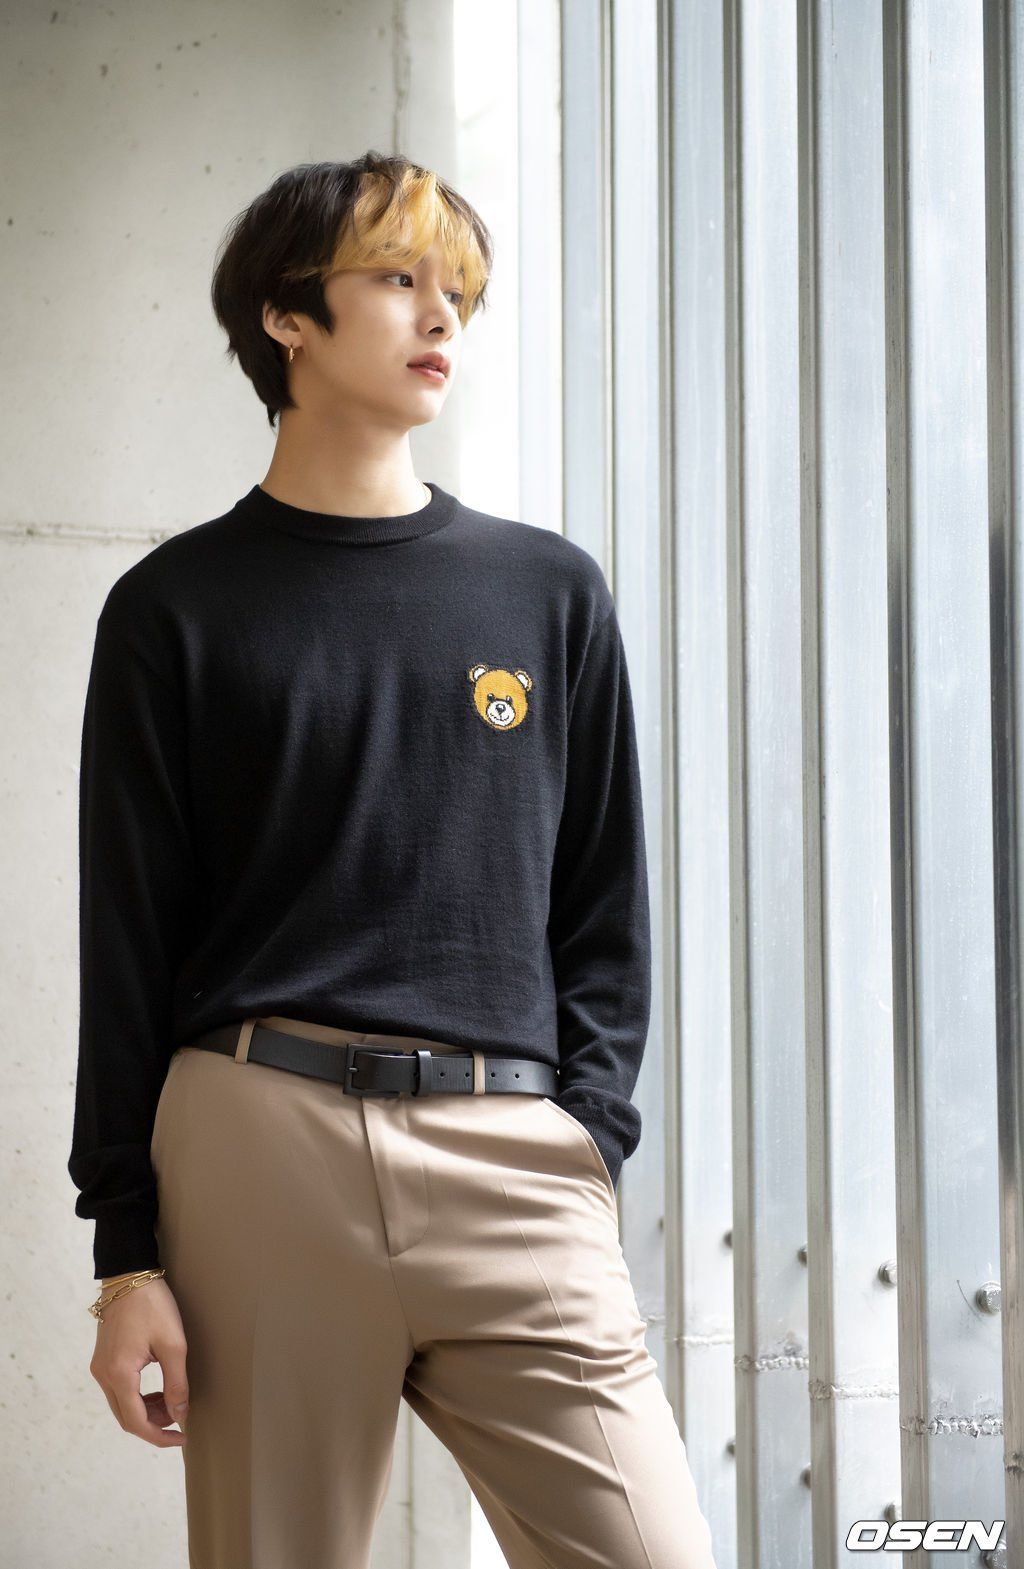 Hyungwon In 2020 Monsta X Hyungwon Hyungwon Monsta X View profile see their activity. pinterest